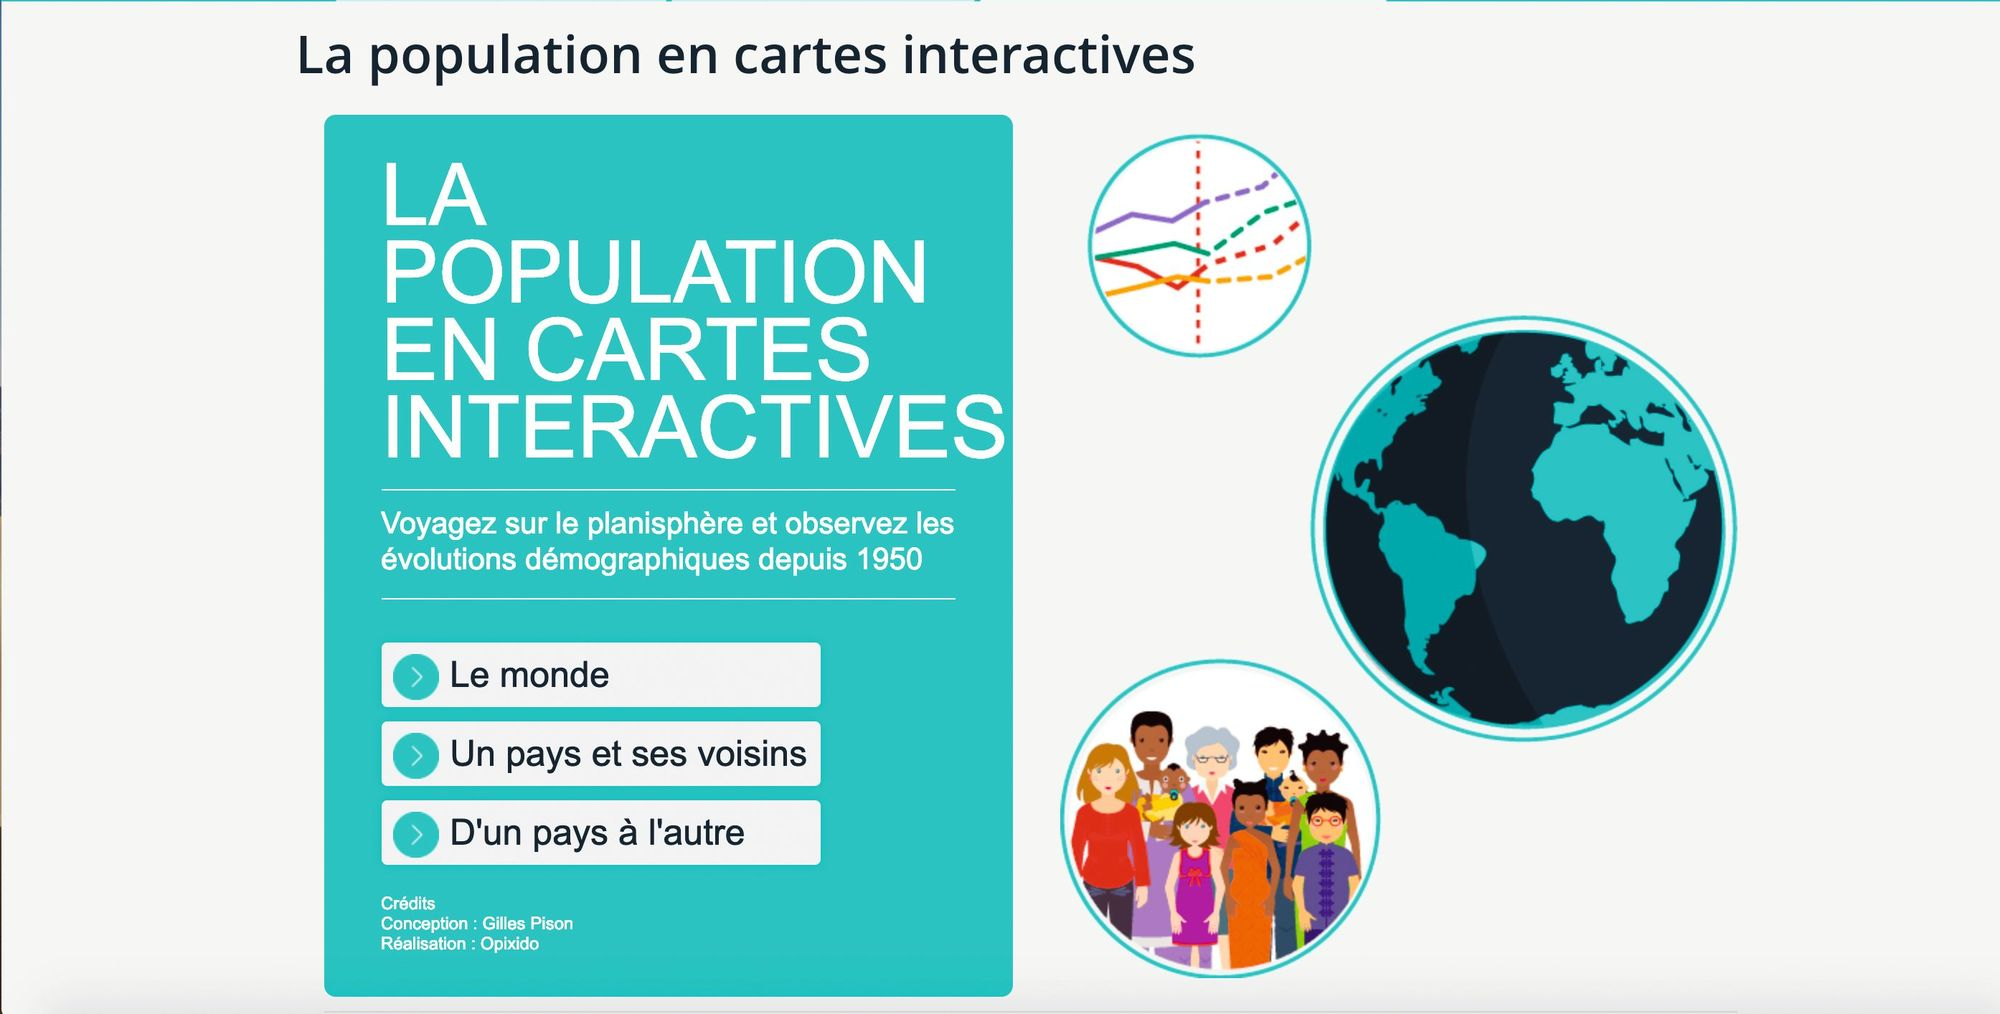 La population en cartes interactives